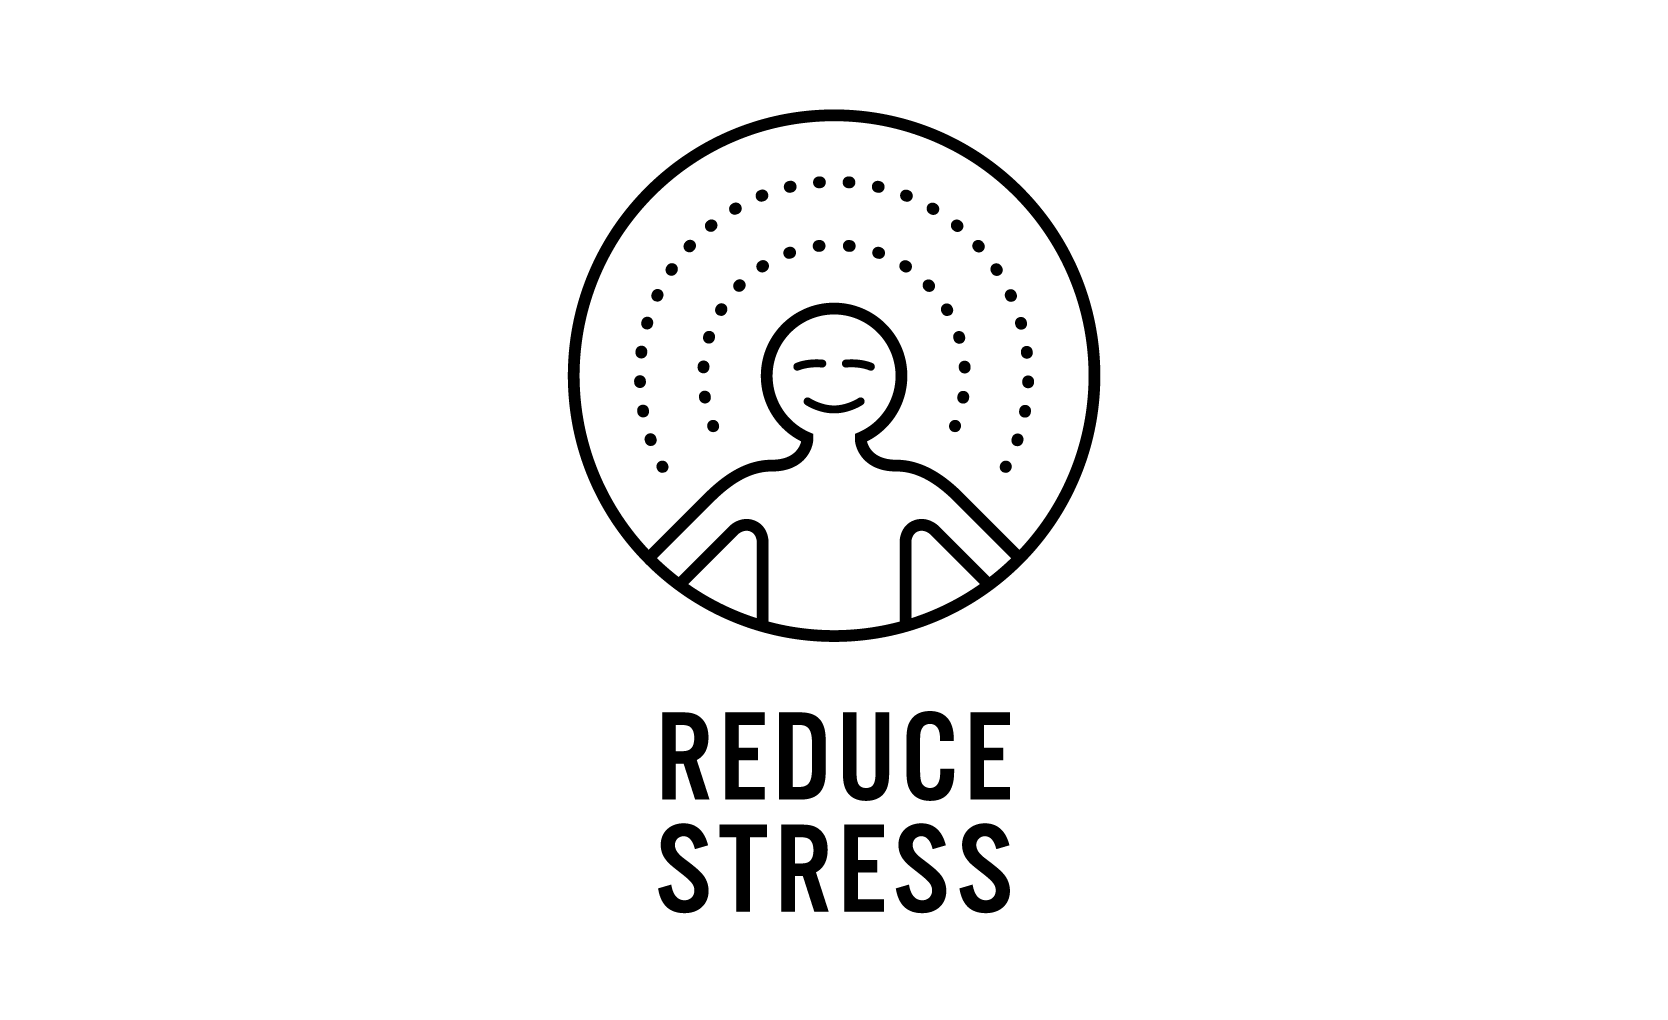 Interesting fact: studies have shown that daily doses of meditation reduce stress, fight depression and anxiety, even decrease blood pressure.   True story.